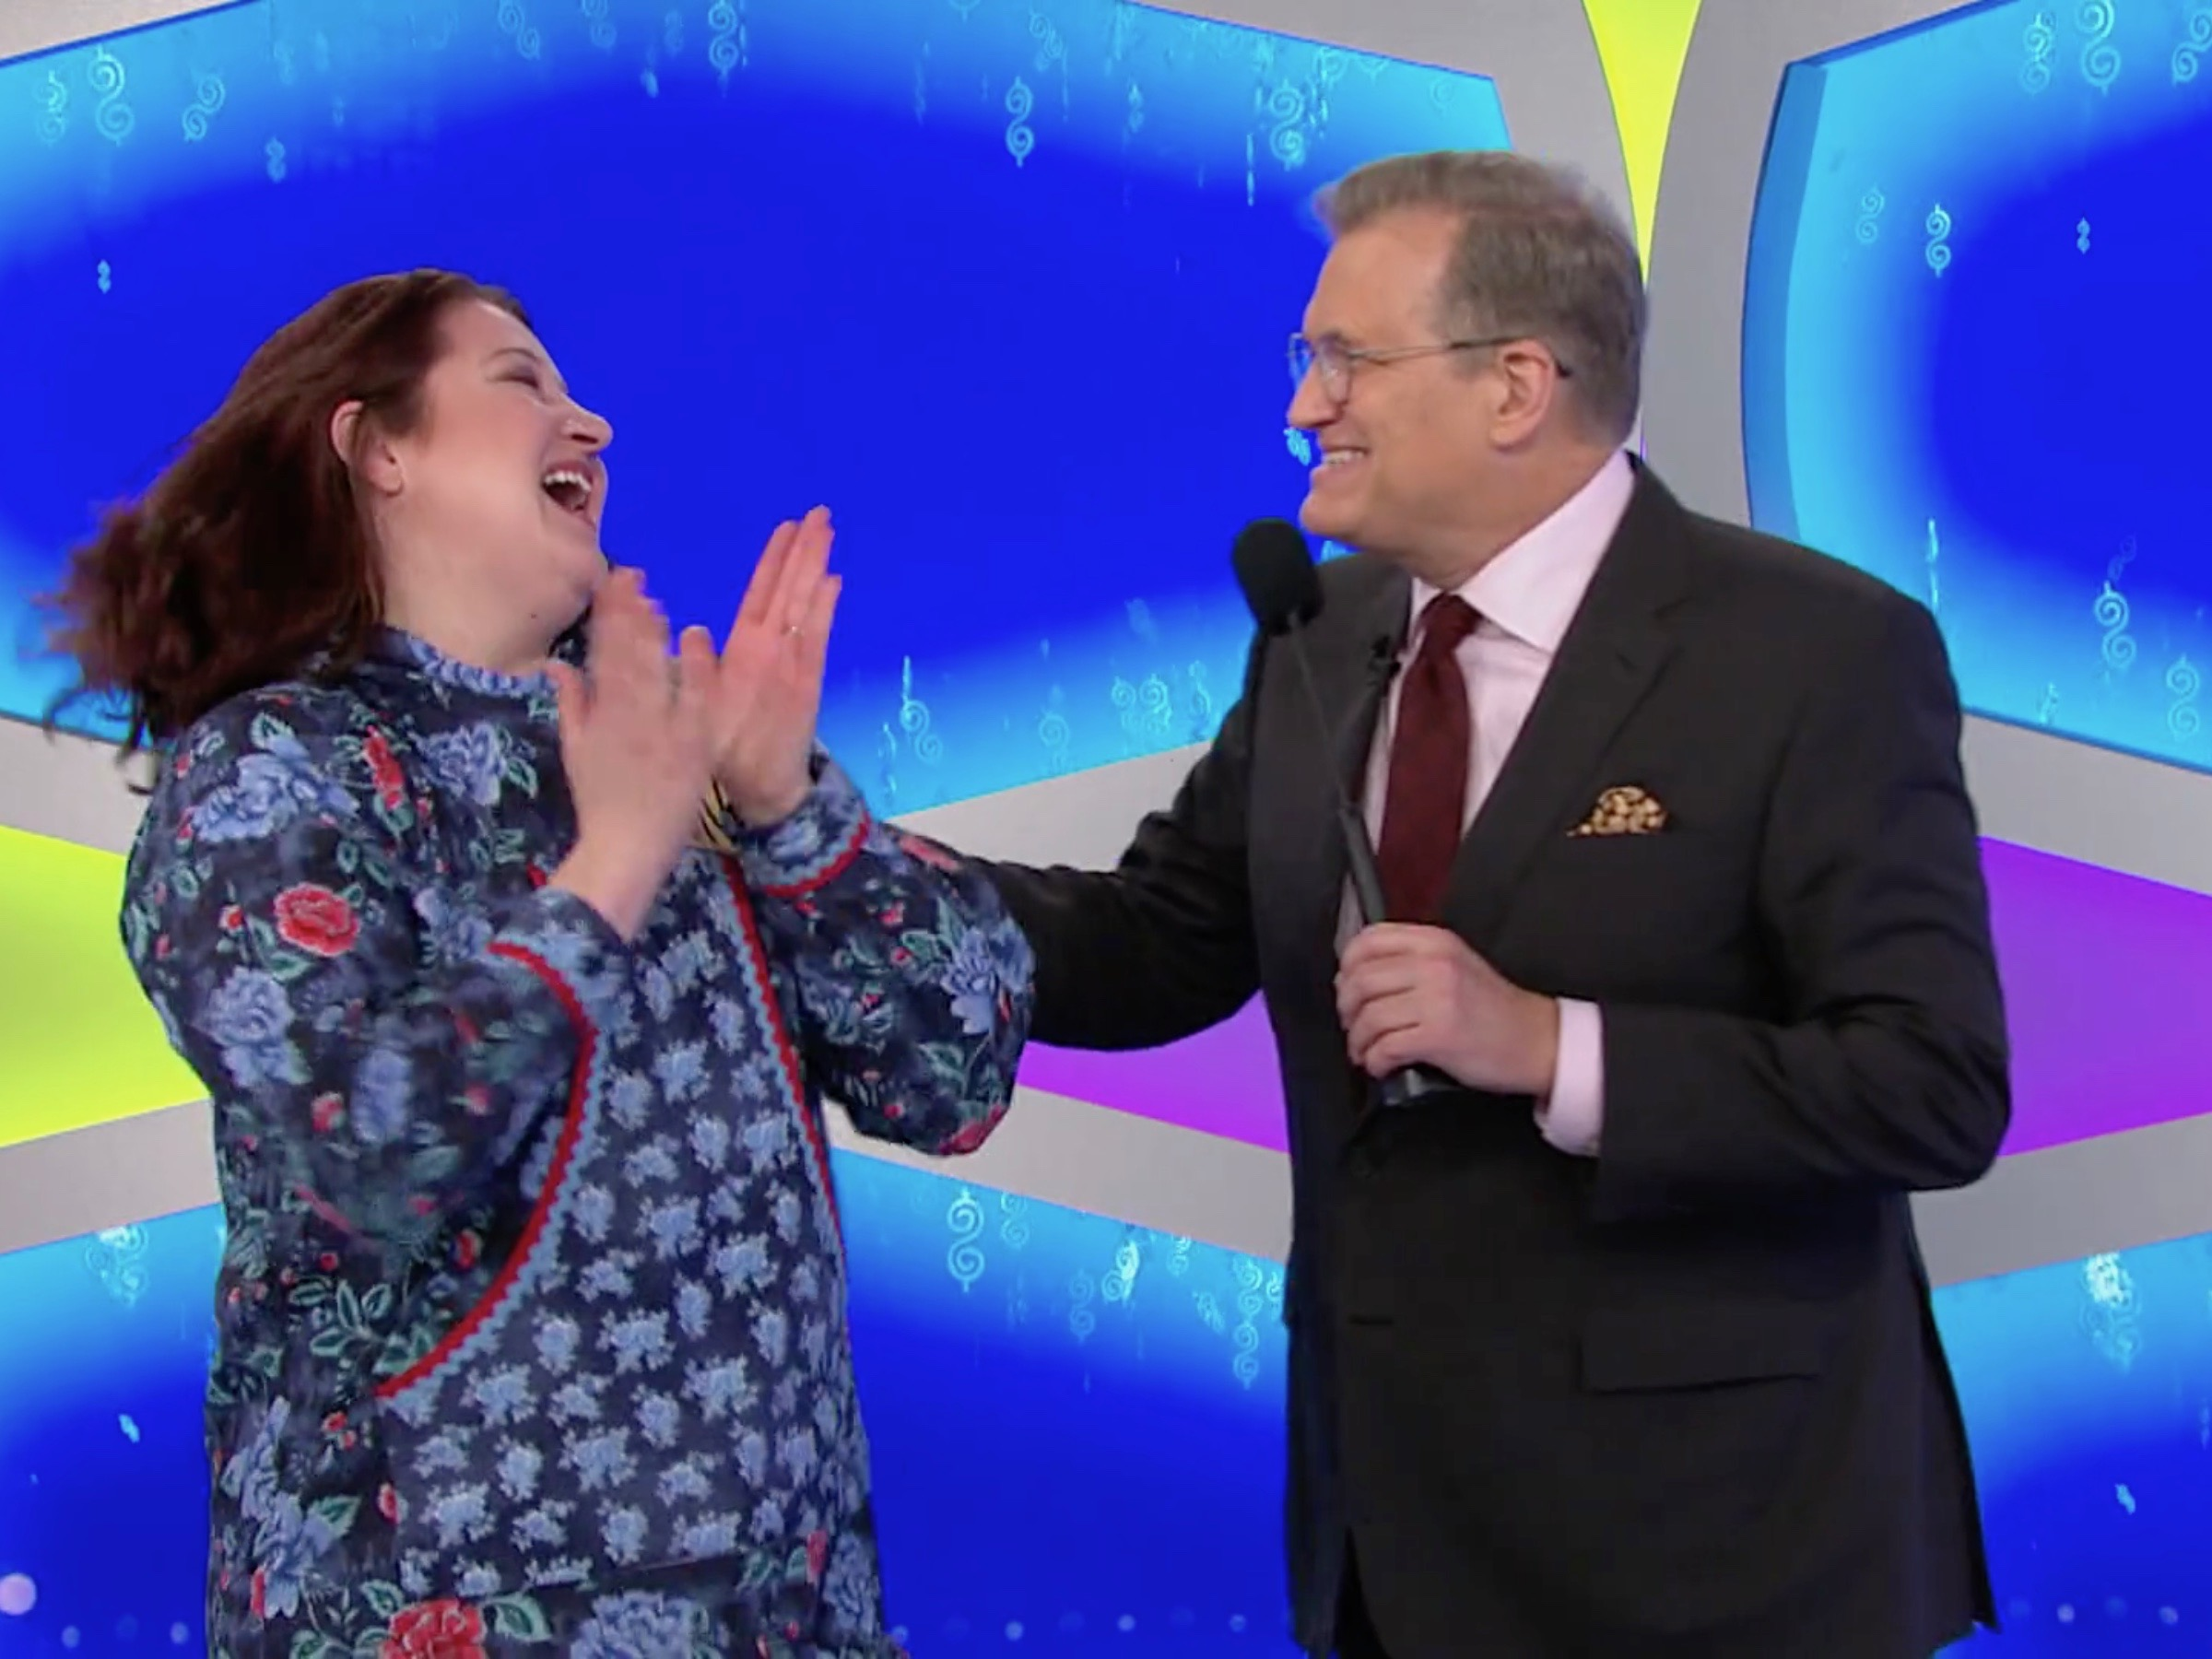 Nurse for Native health corporation wins big on 'The Price is Right'